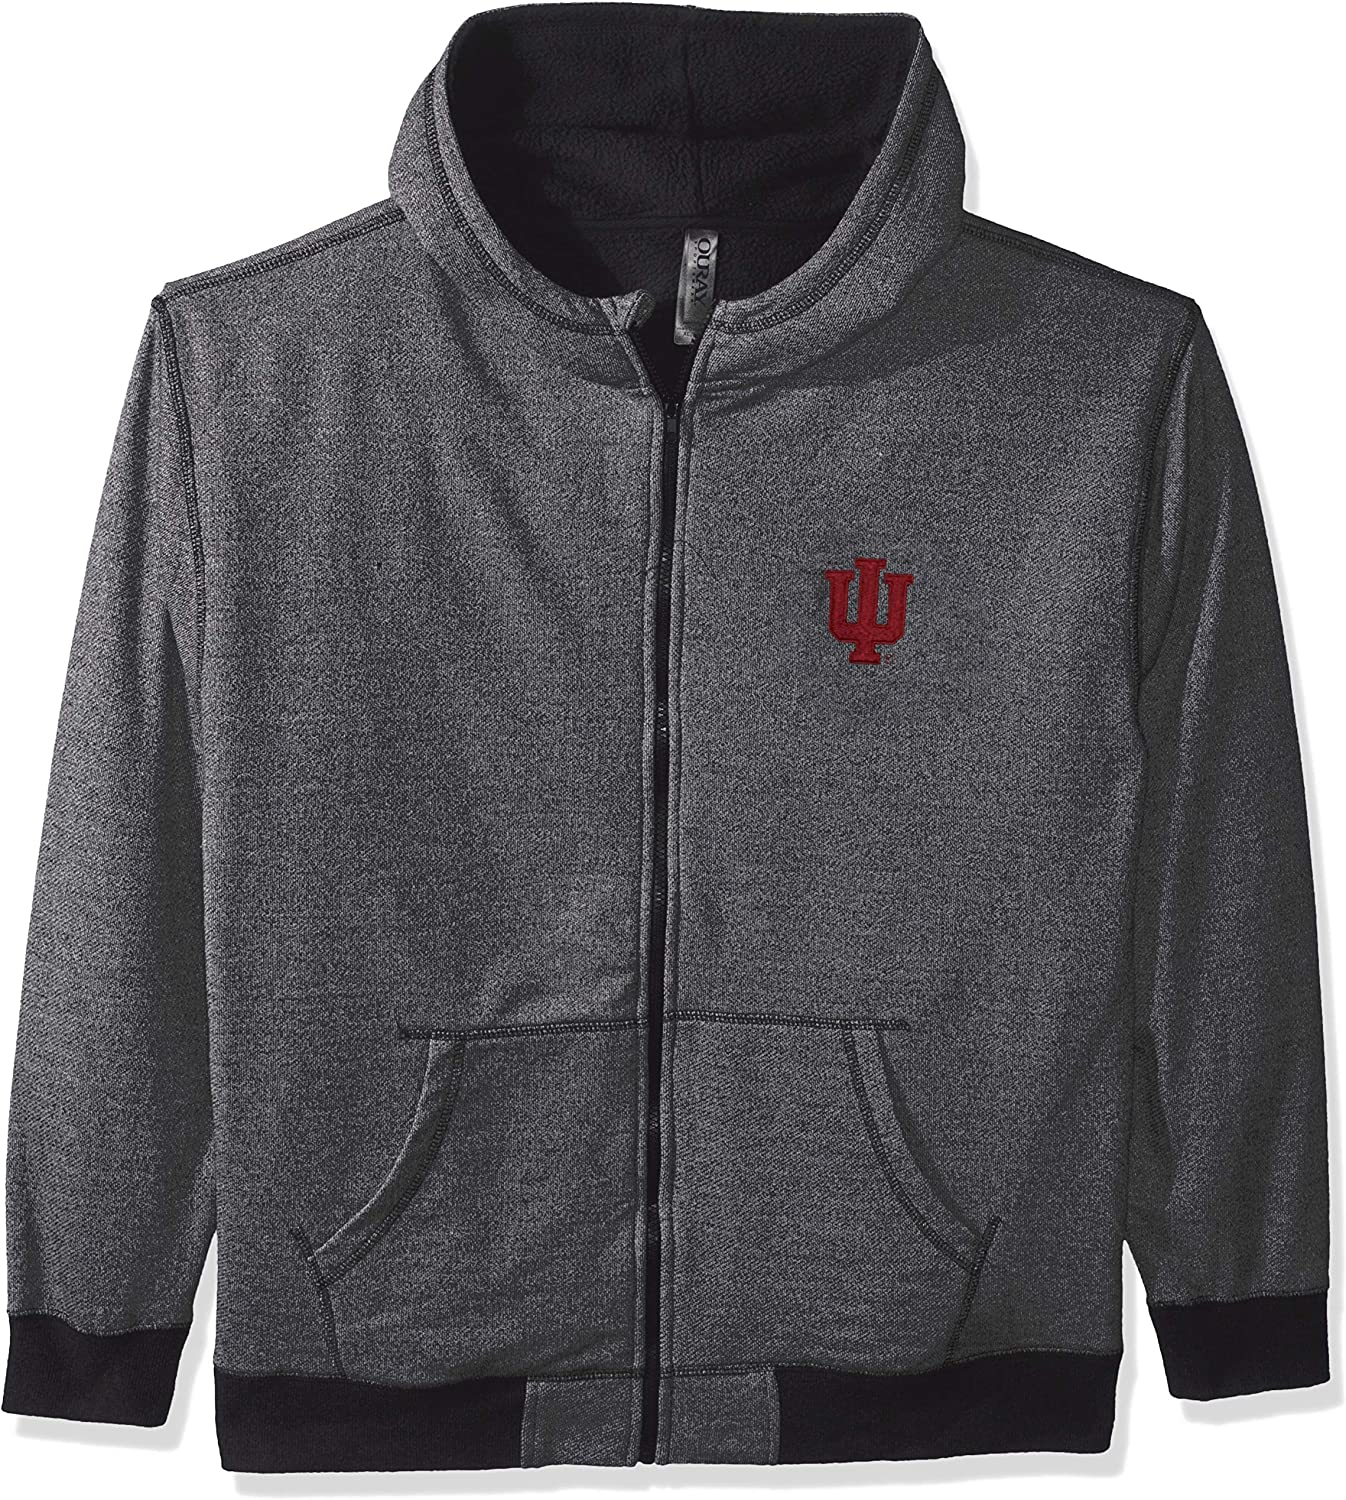 Ouray Sportswear Men's Thermo Max 44% OFF Zip Hood Over item handling ☆ Full